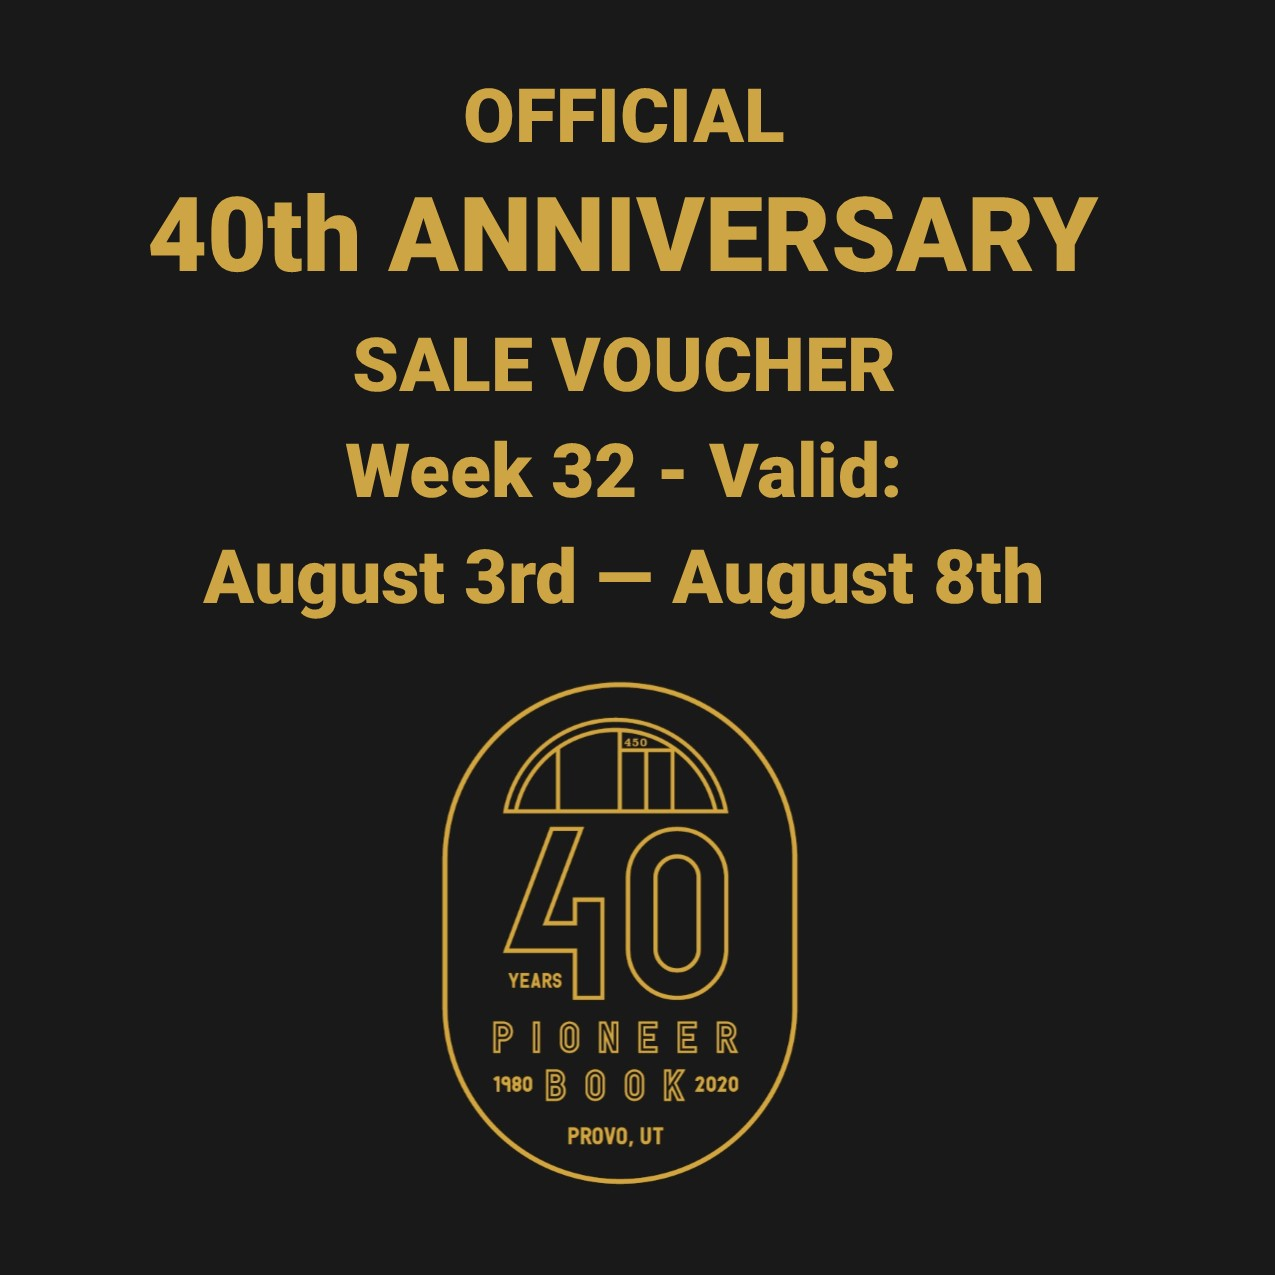 Image for 40th Anniversary Sale! Voucher - Week 32: August 3rd - August 8th